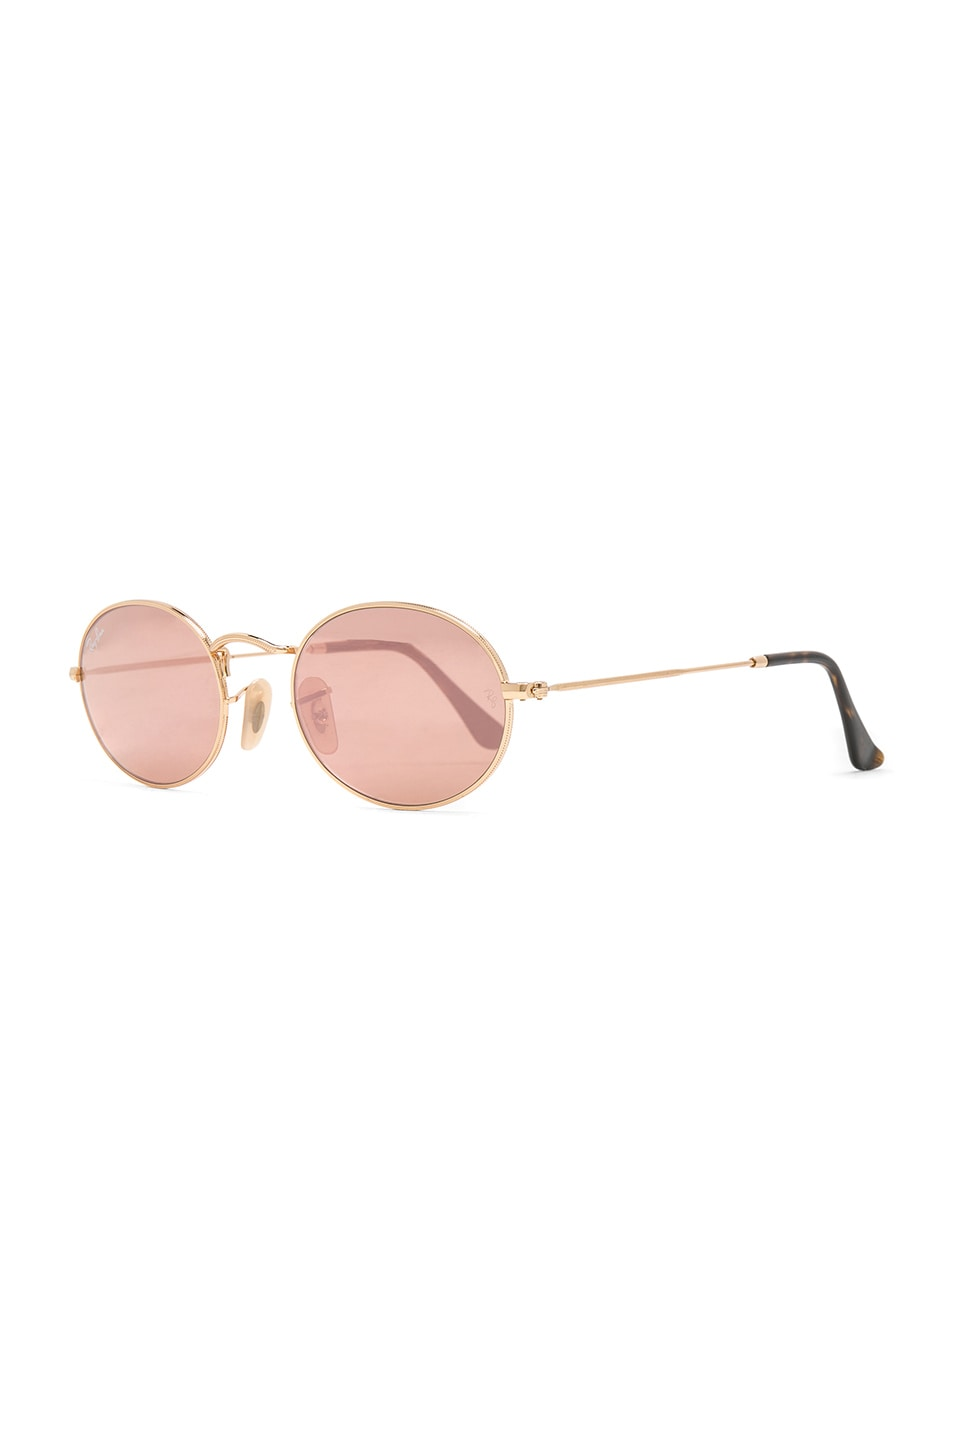 bc85ebac01e Image 2 of Ray-Ban Oval Flat Sunglasses in Gold   Copper Flash